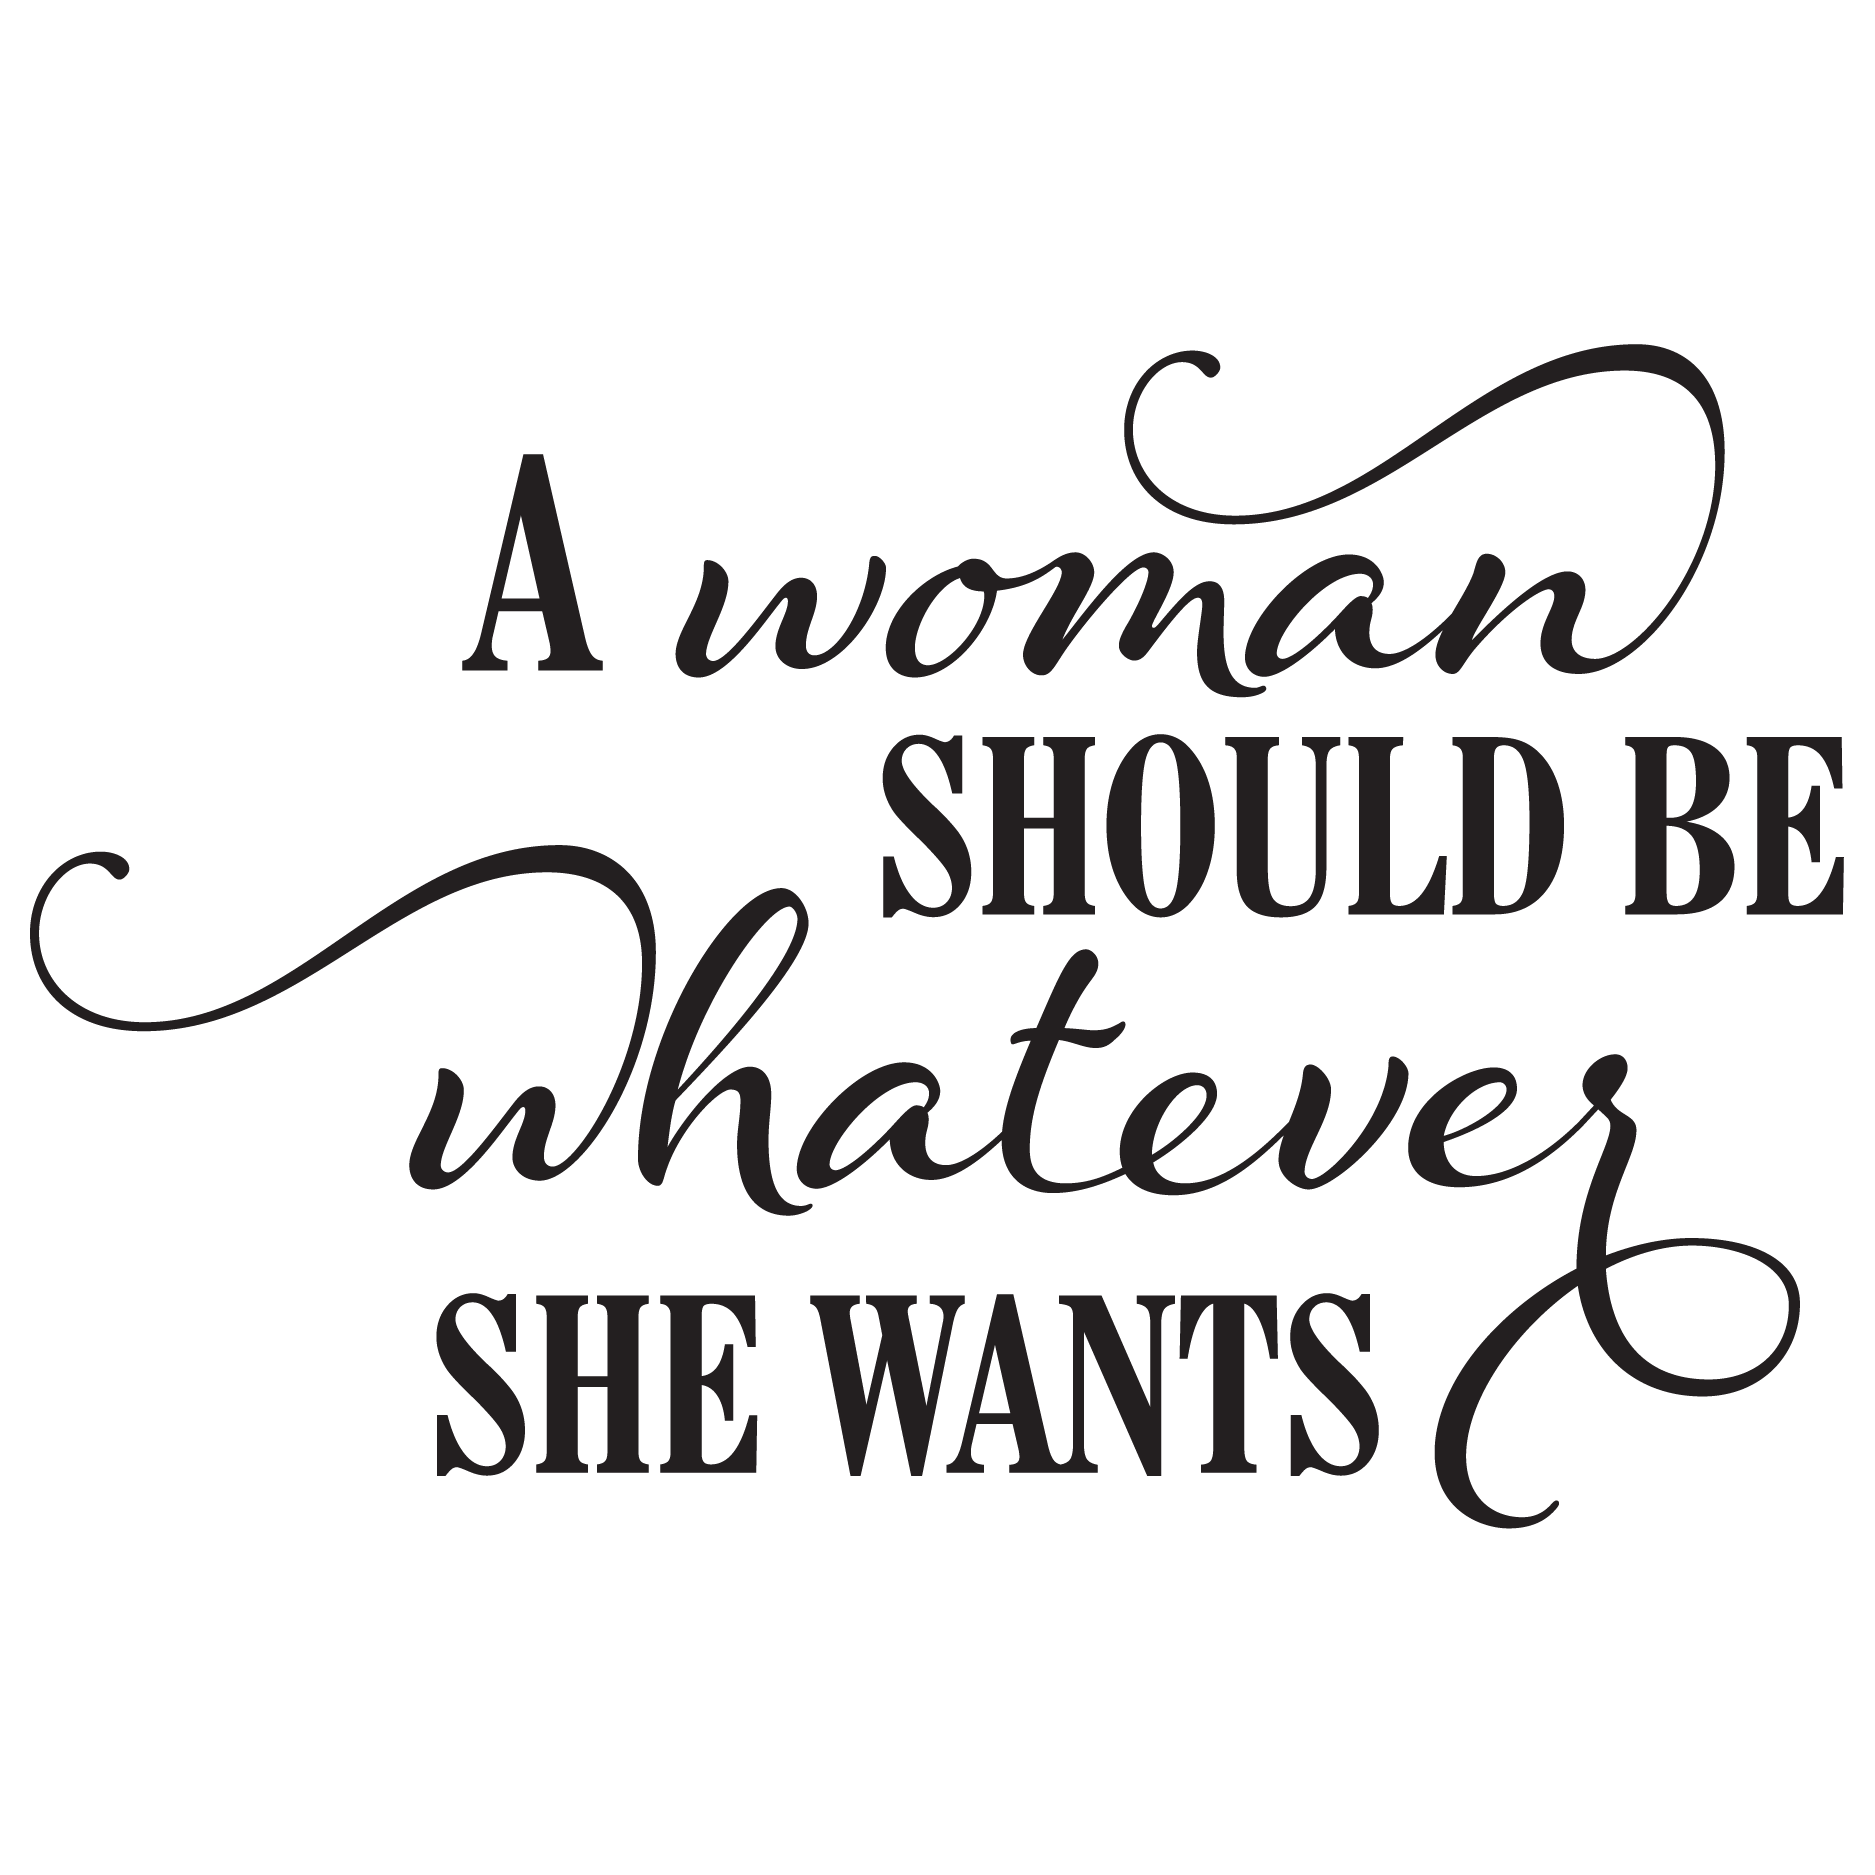 When A Woman Says Whatever Quotes: A Woman Should Be Whatever She Wants Wall Quotes™ Decal